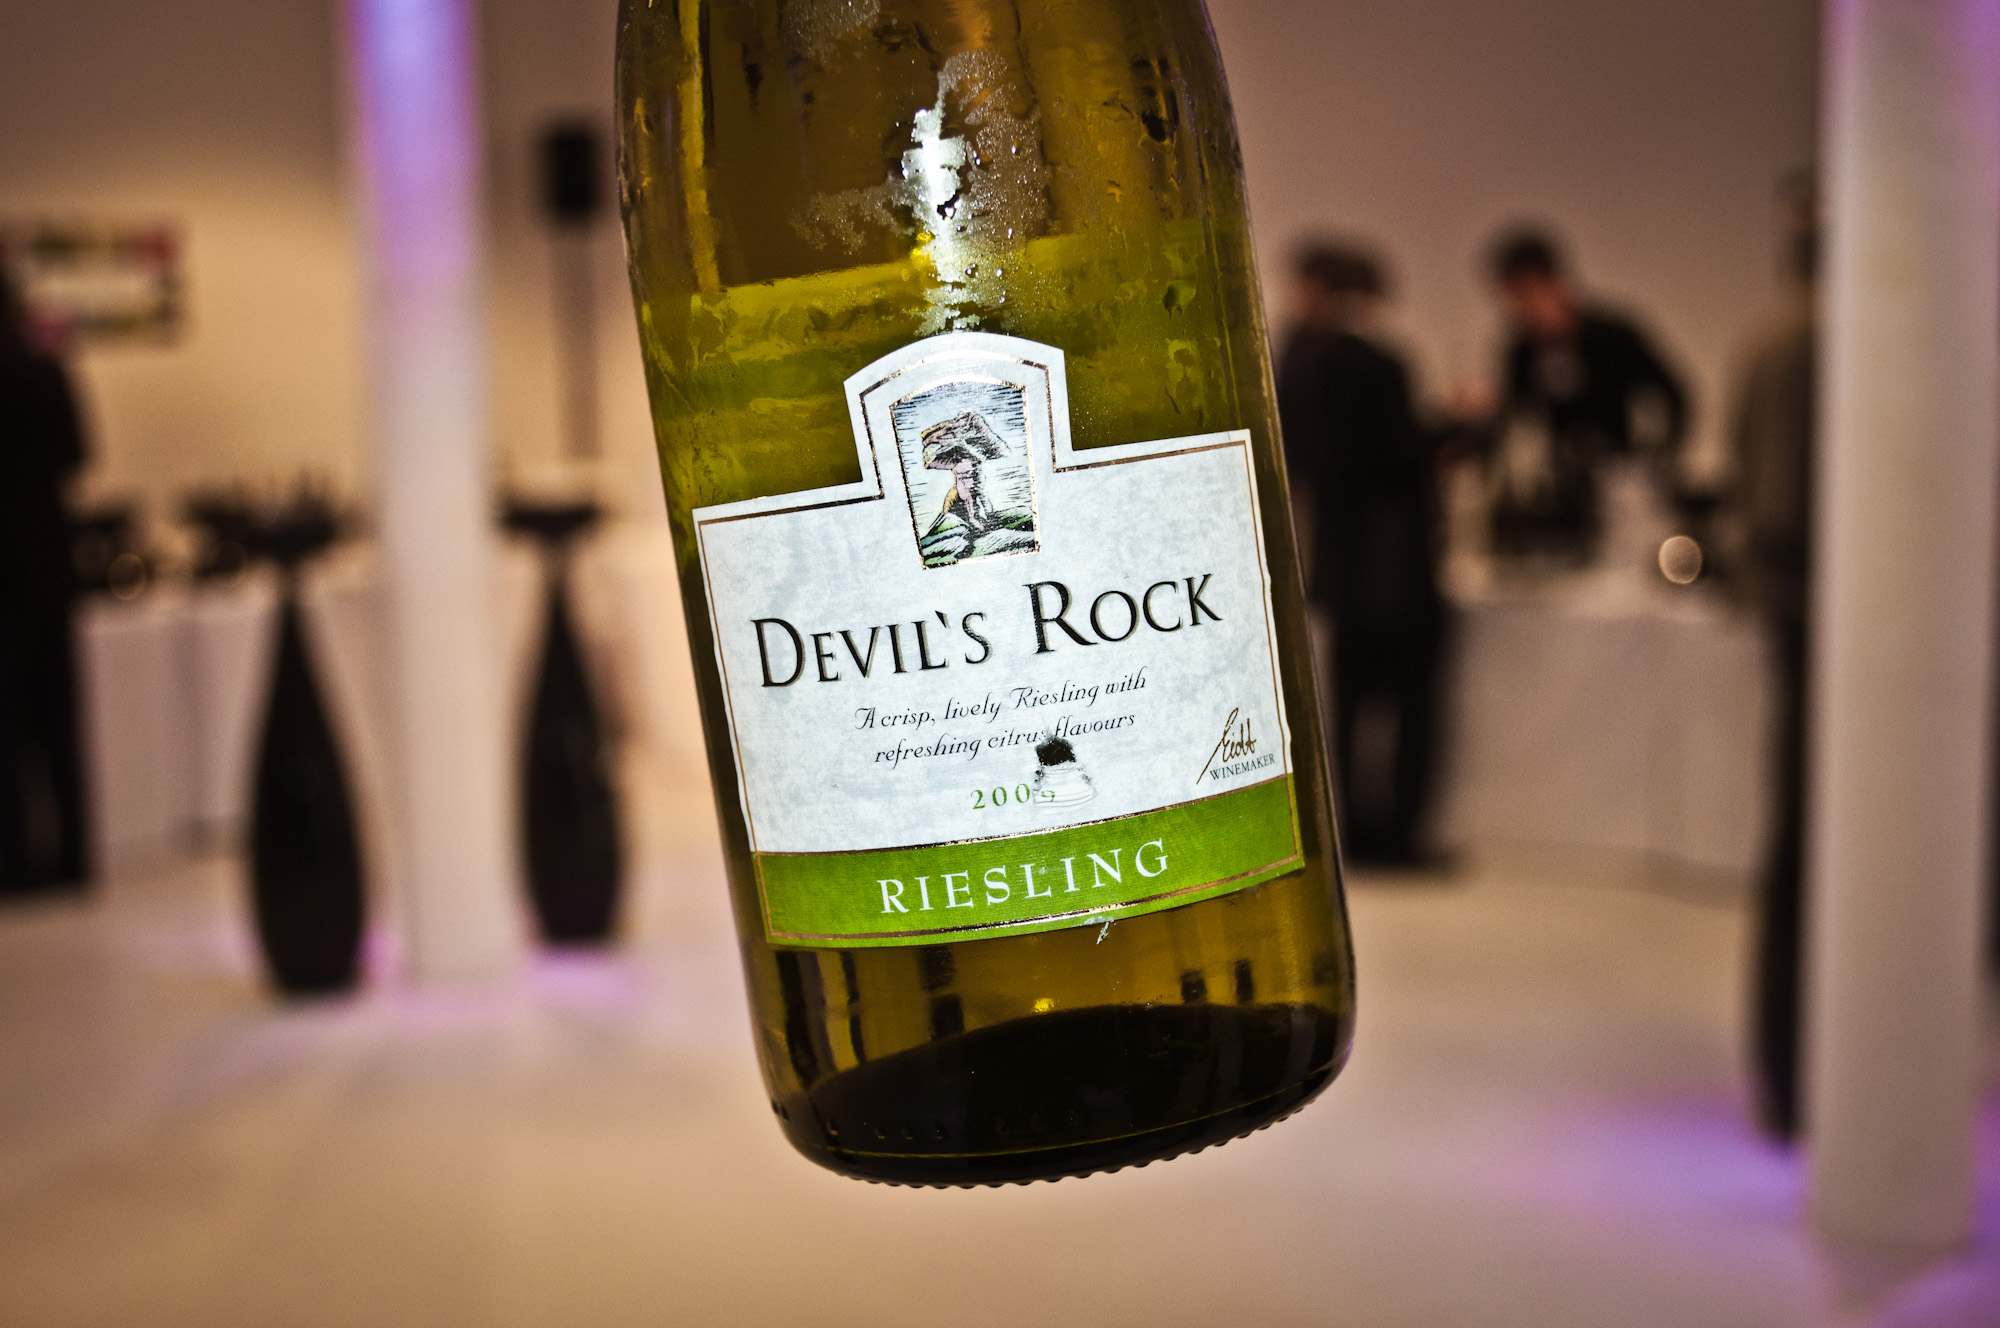 The future of German wine in the UK: London Riesling & Co